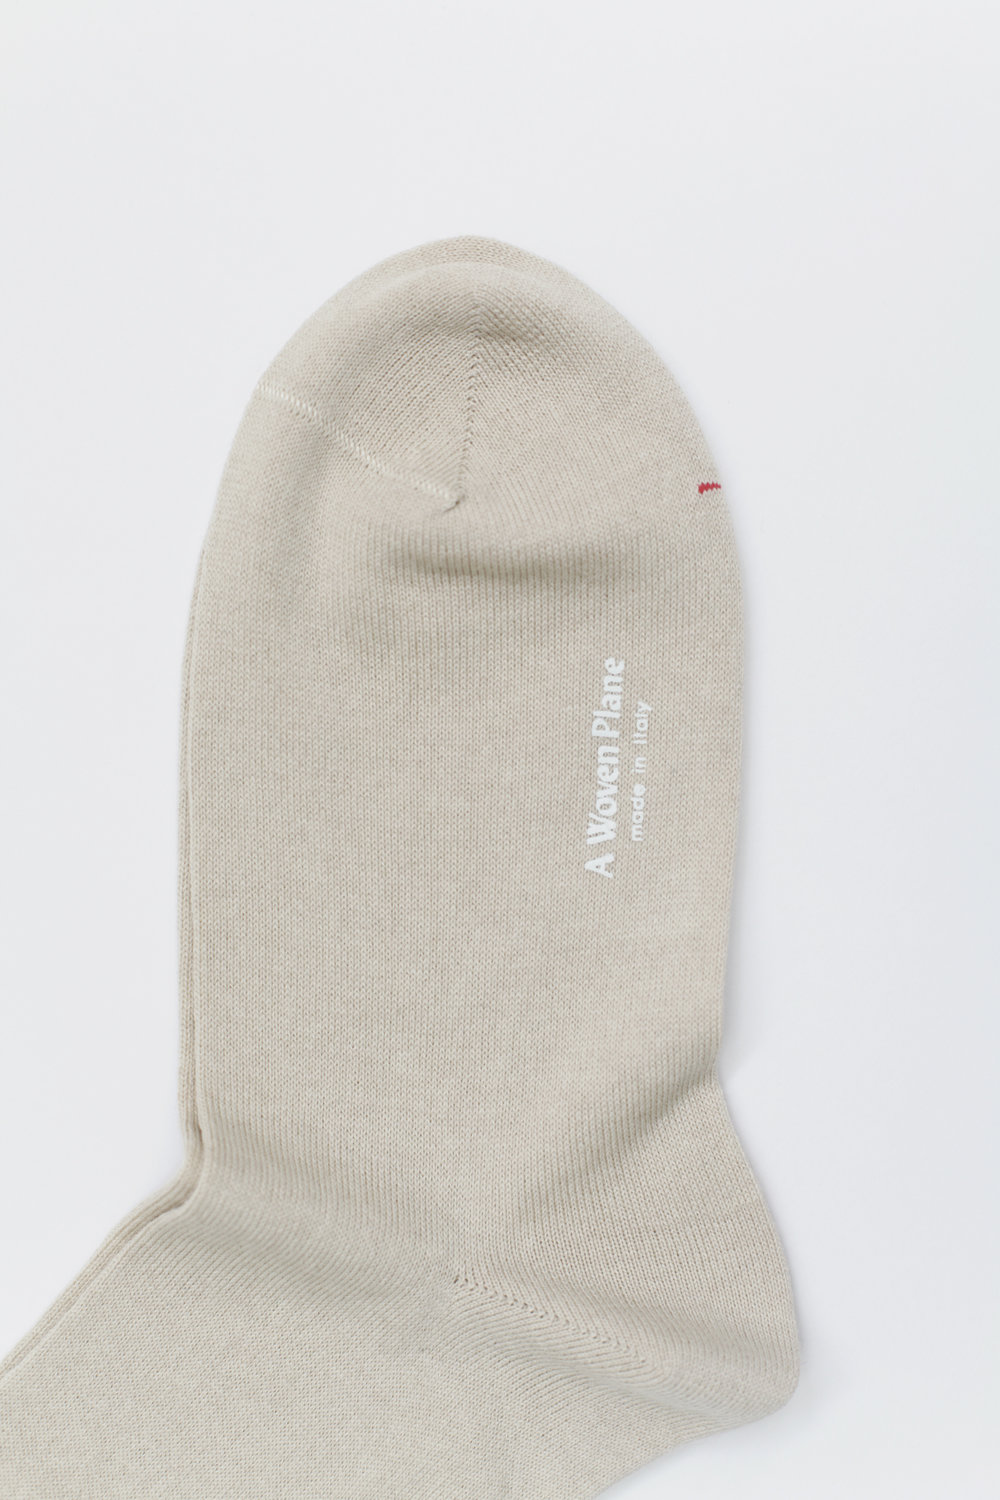 _a_woven_plane_more_this_less_that_ethical_socks_04.jpg